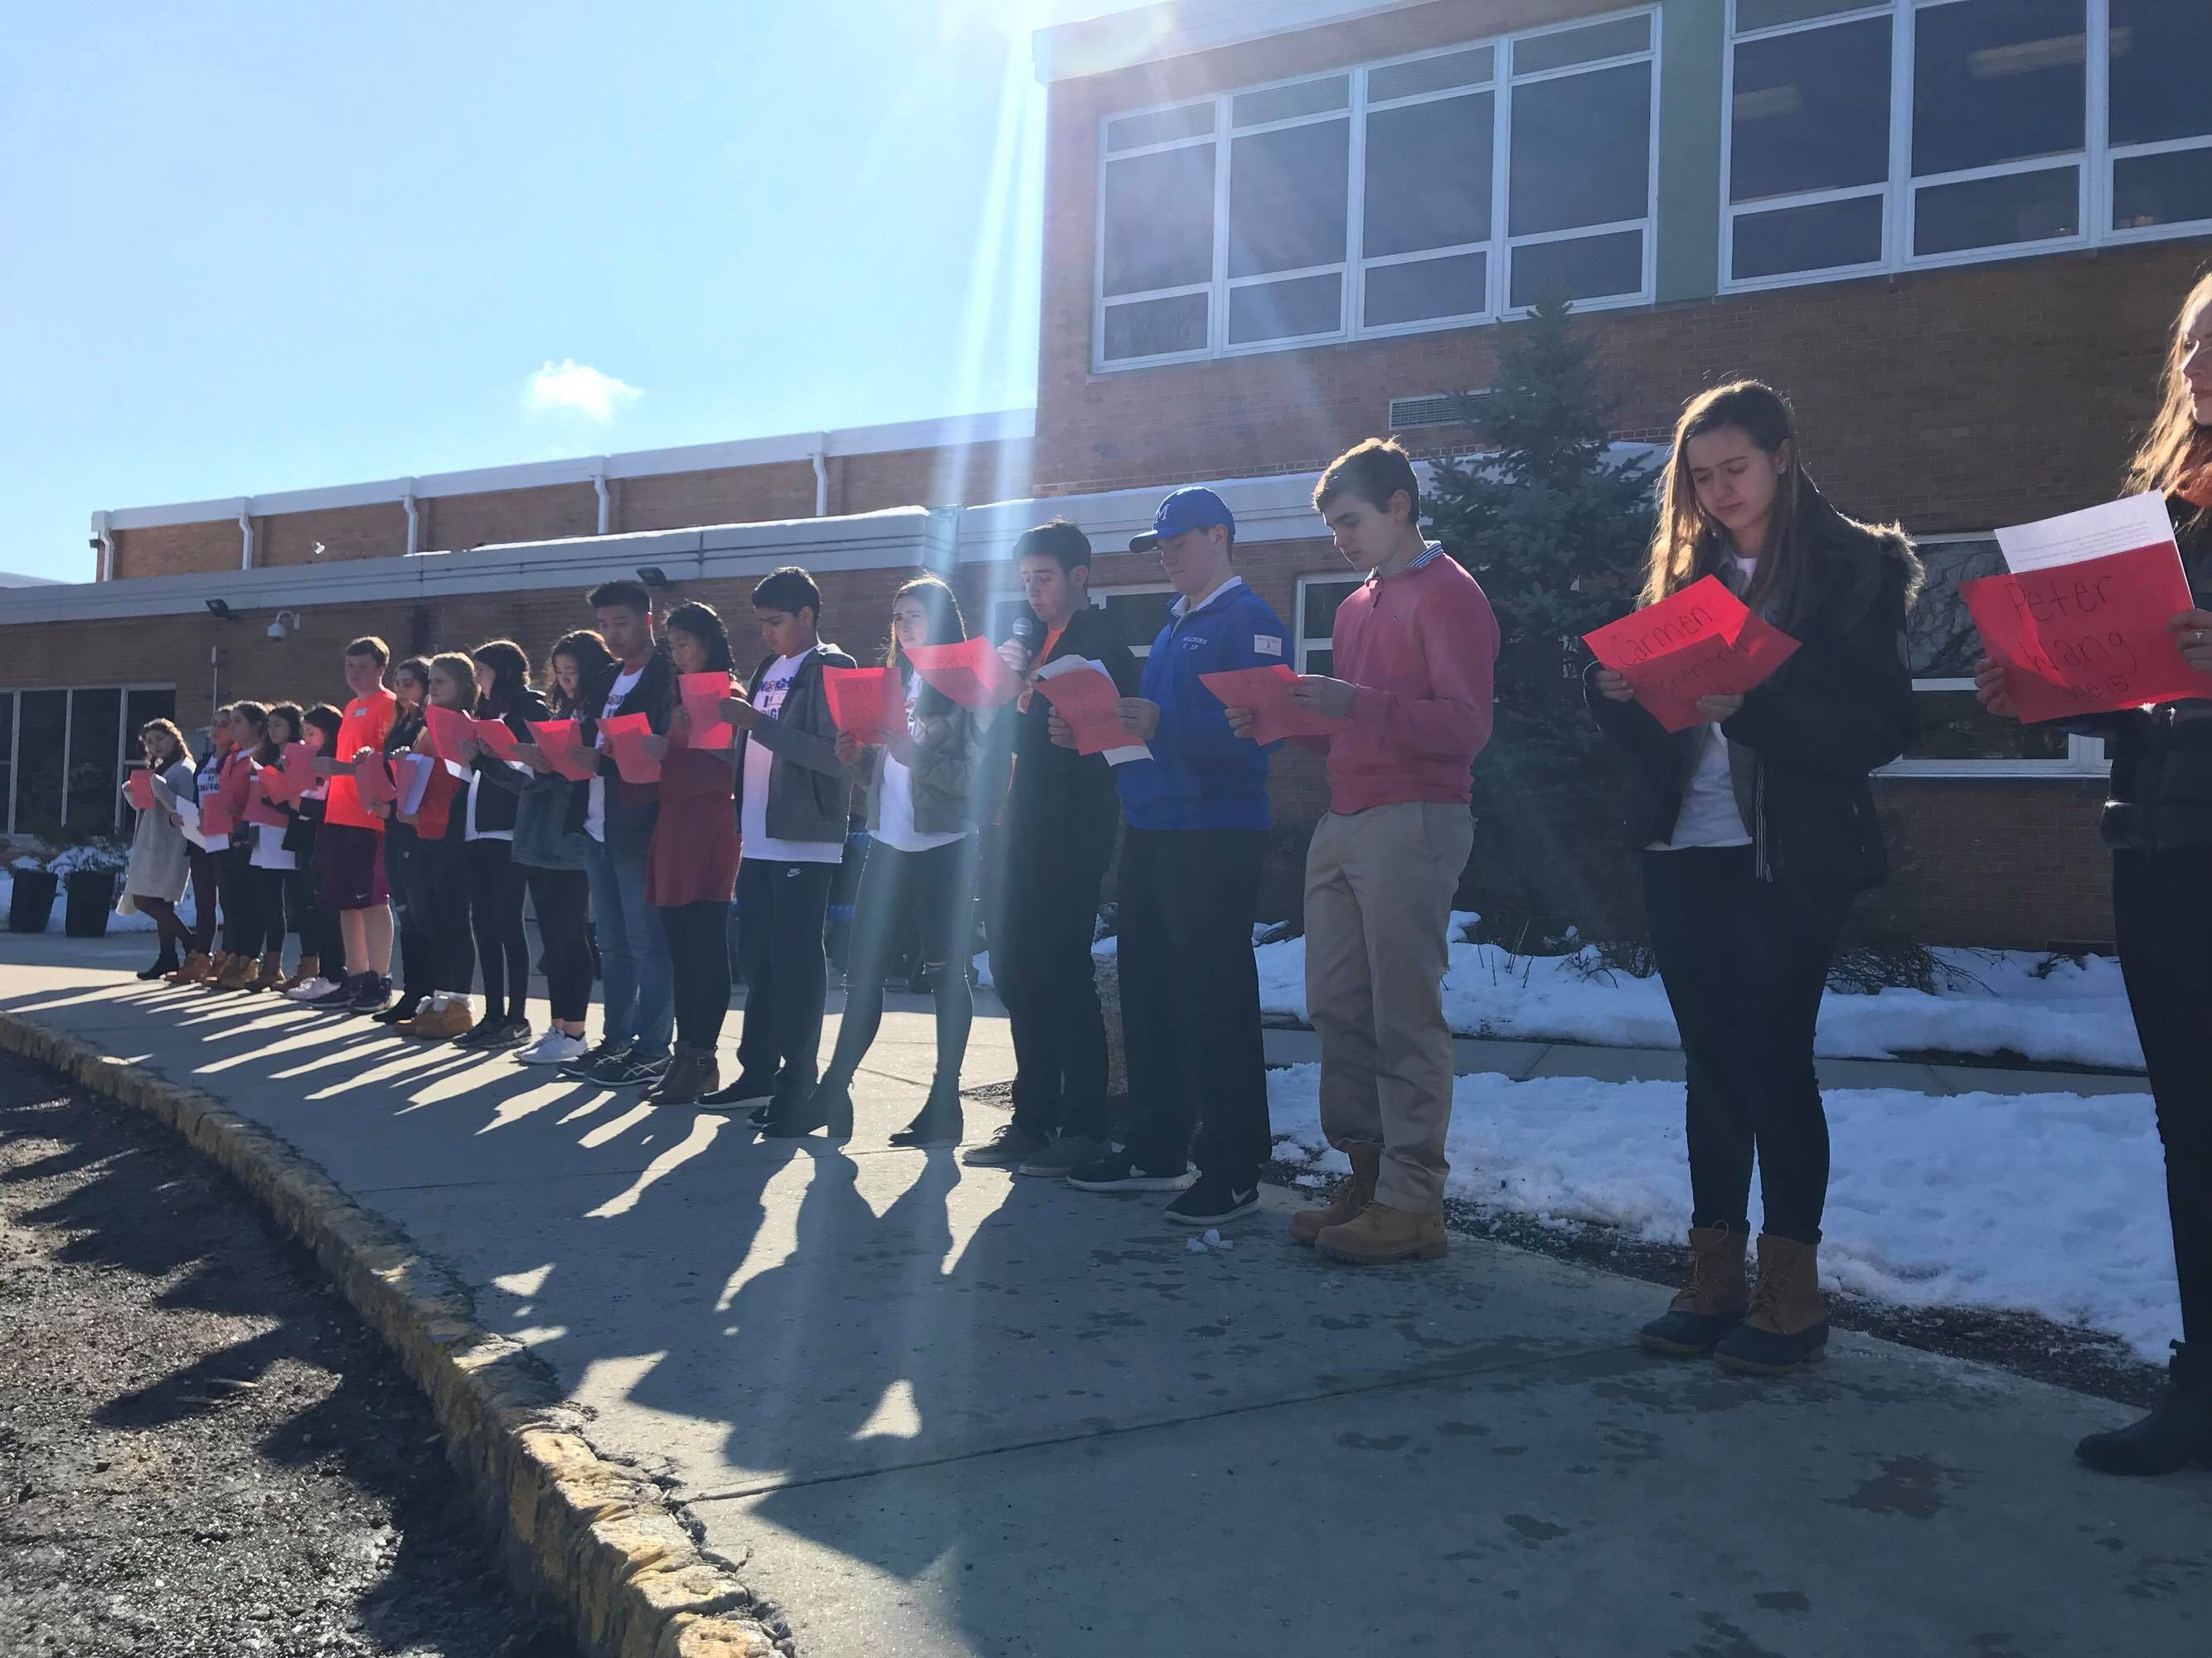 Millburn Students Bow Their Heads for Parkland